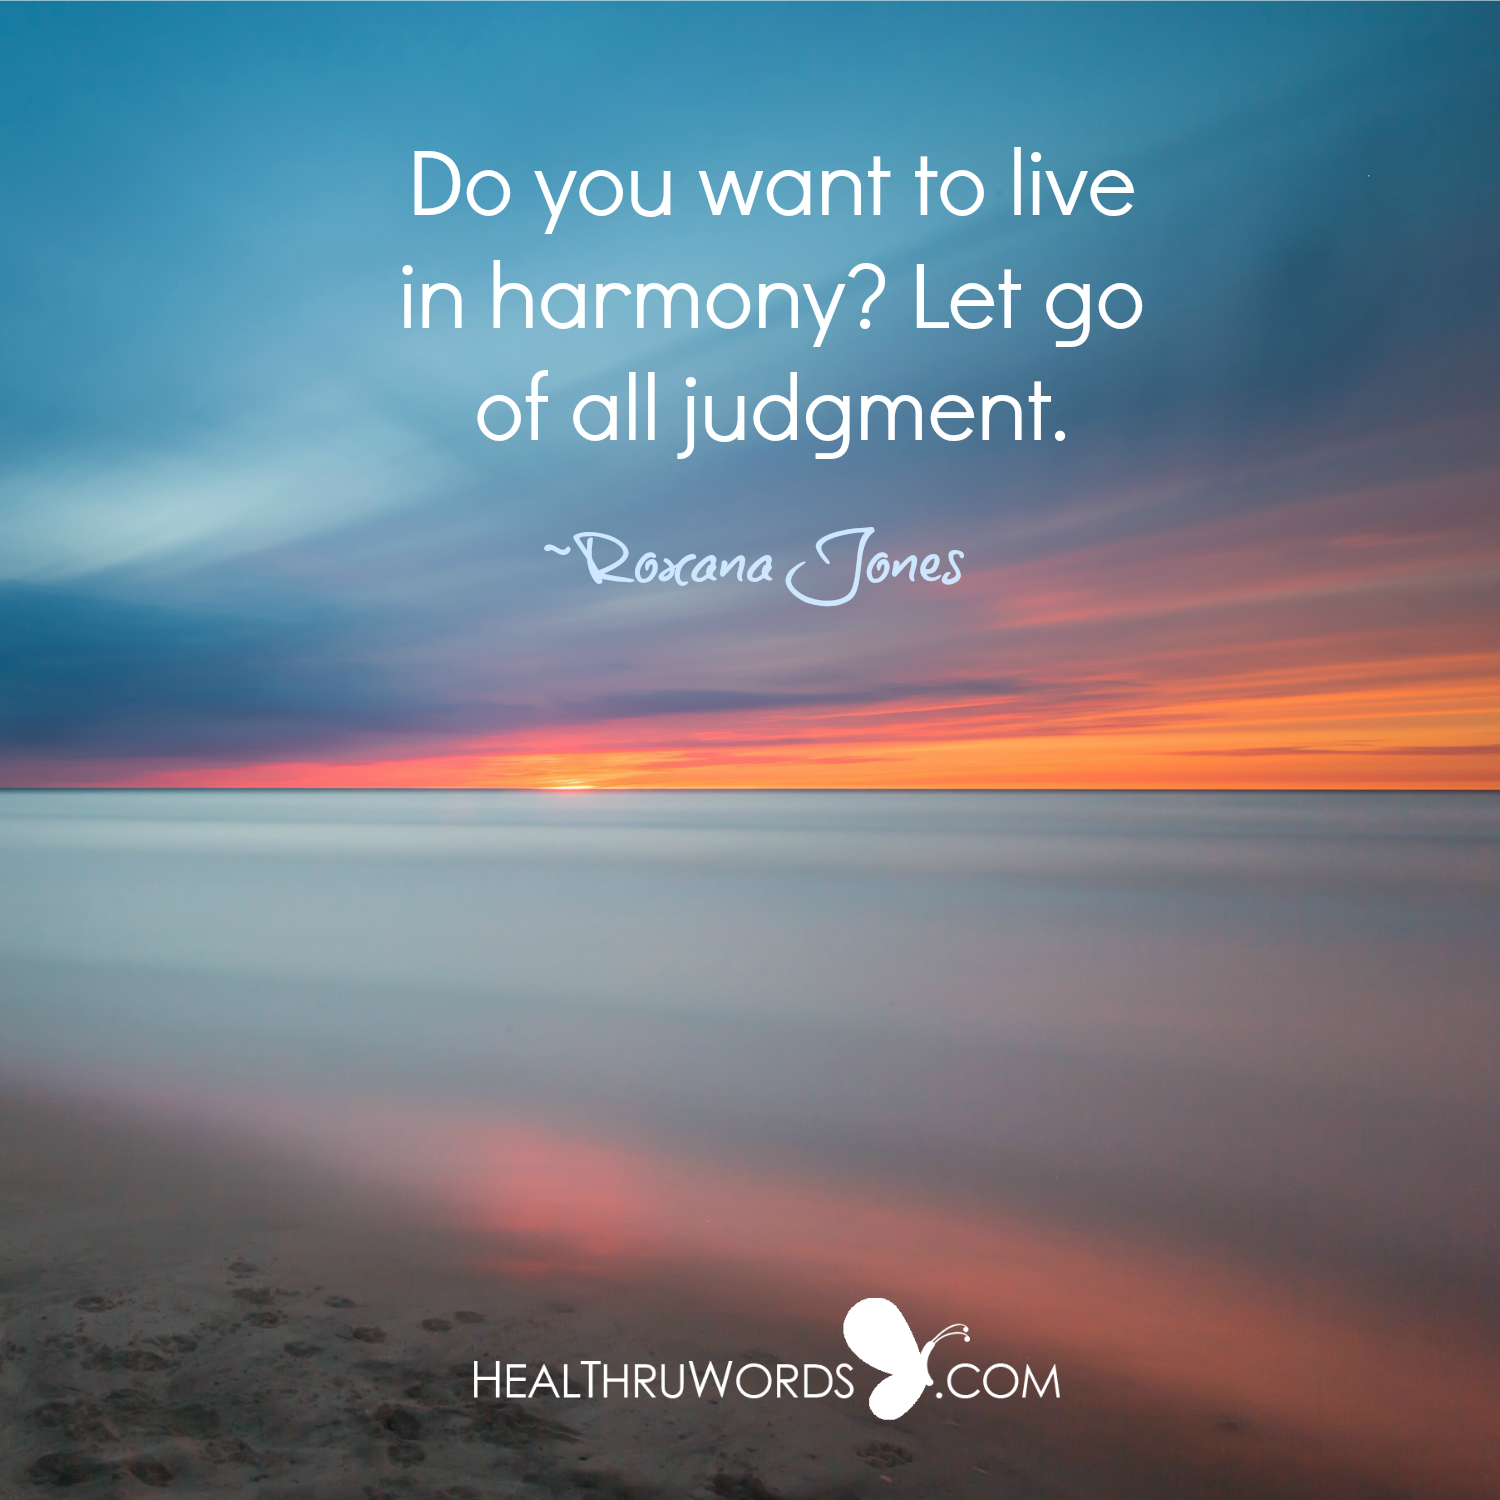 Inspirational Image: From Judgment to Harmony